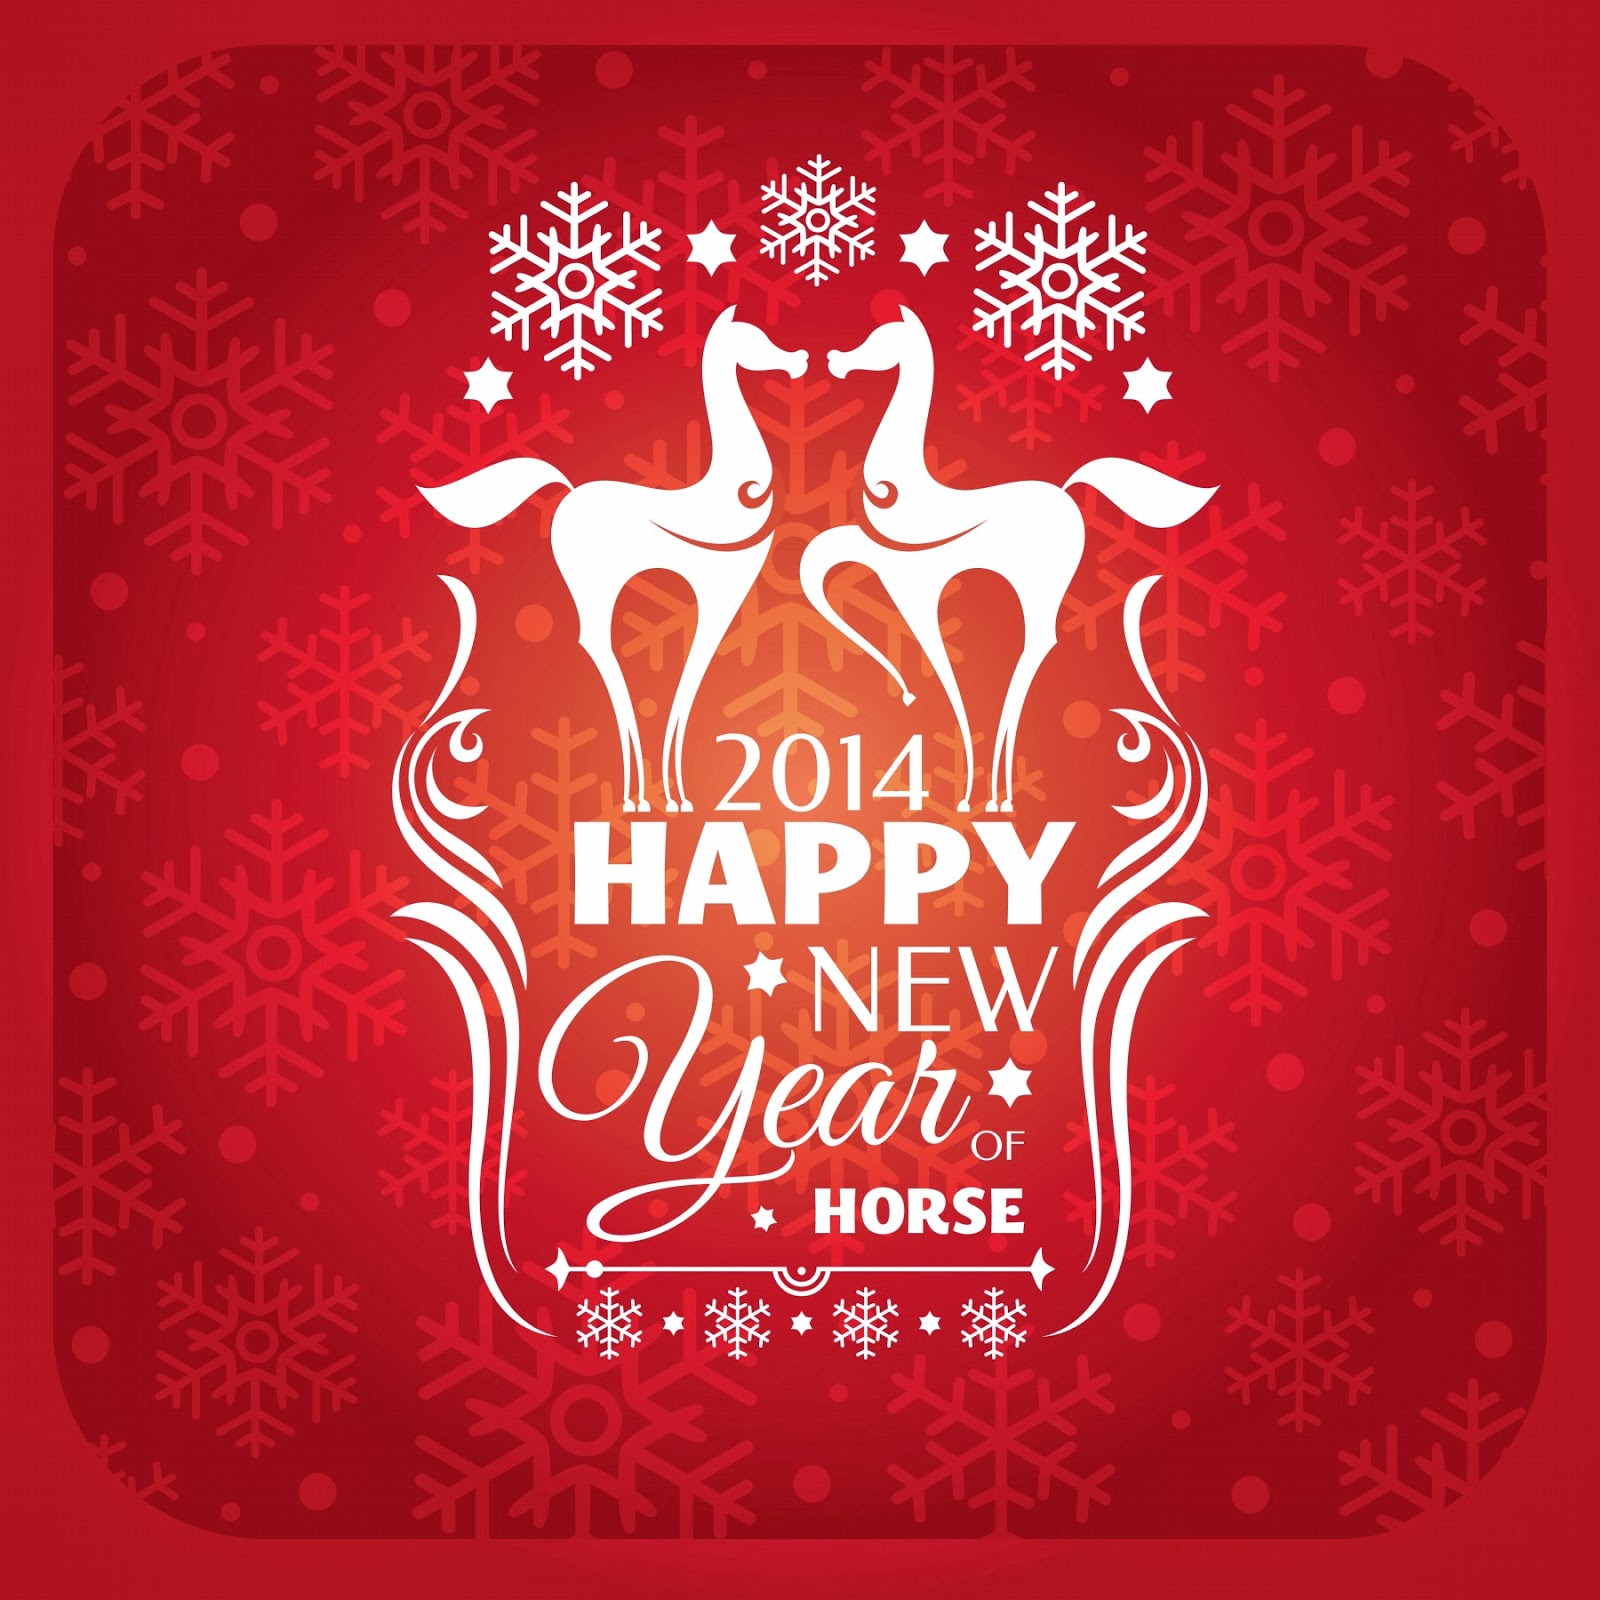 Happy new year tokyorl chinese new year 2014 horse voltagebd Image collections